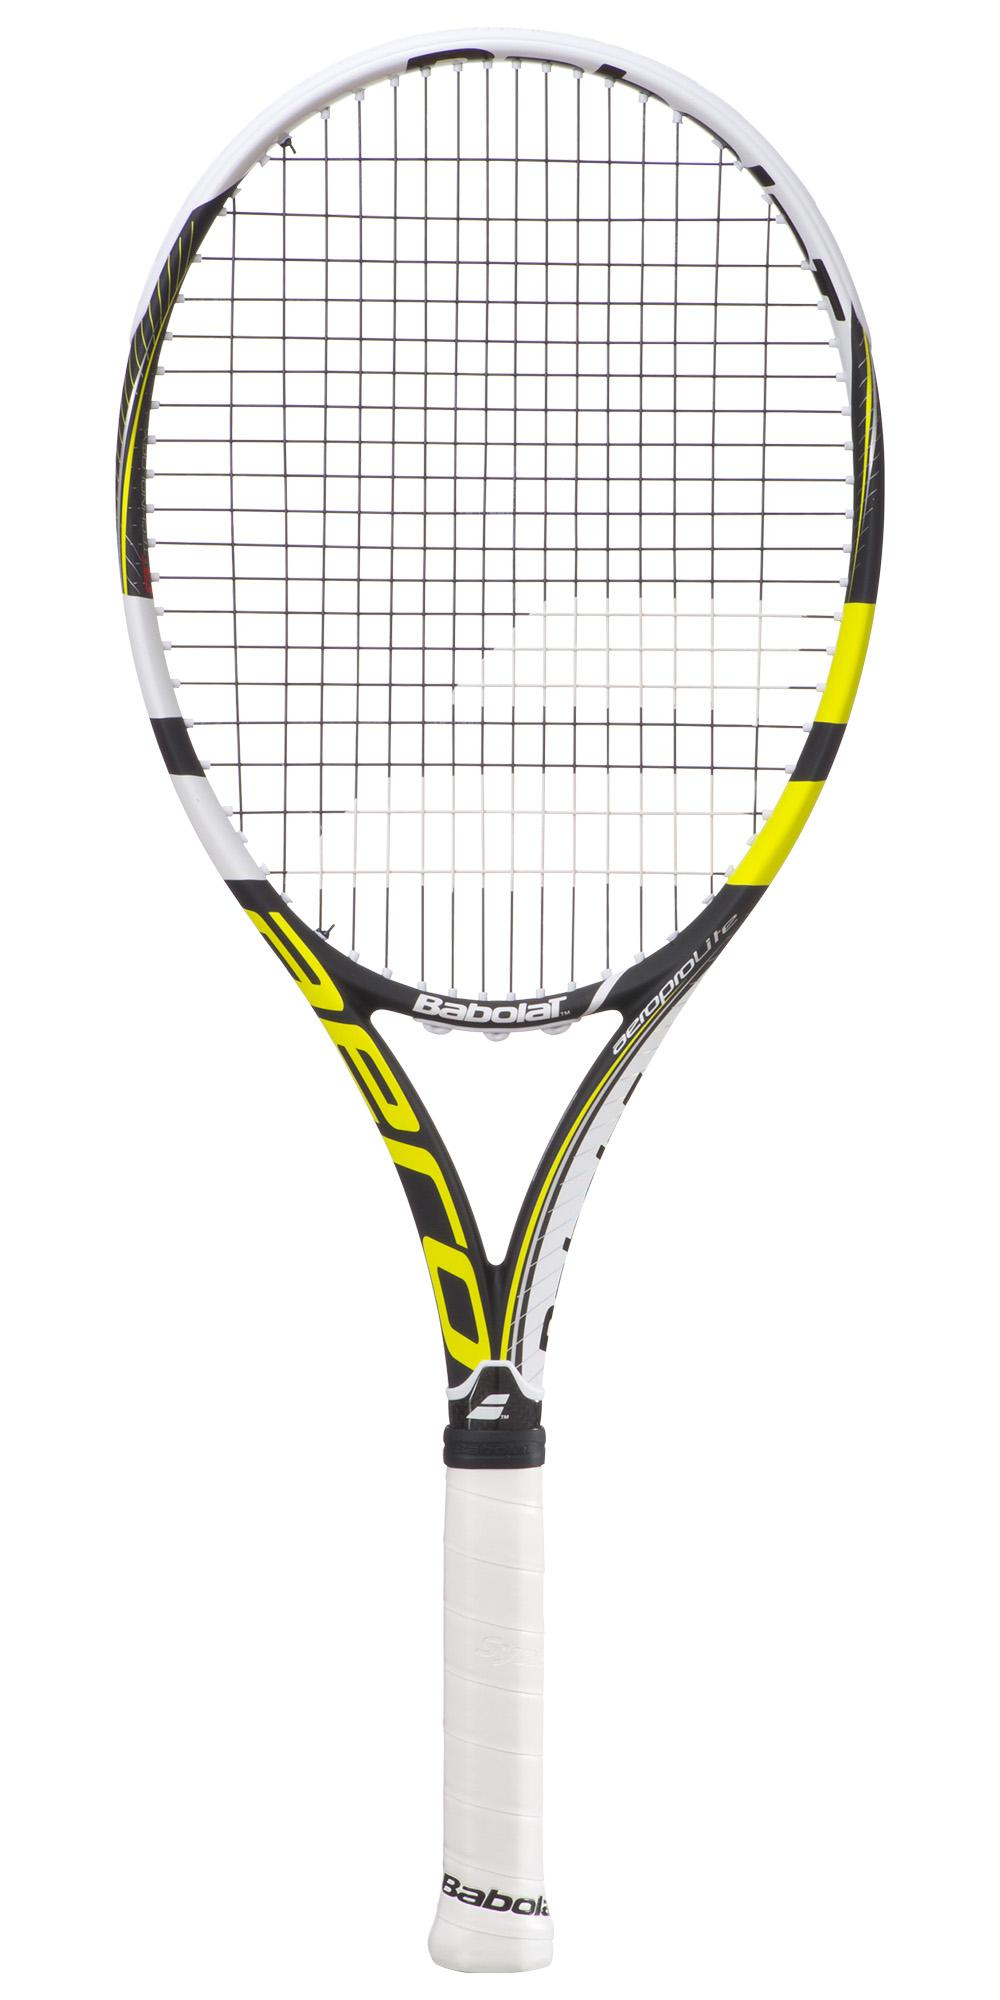 babolat aeropro lite tennis racket. Black Bedroom Furniture Sets. Home Design Ideas